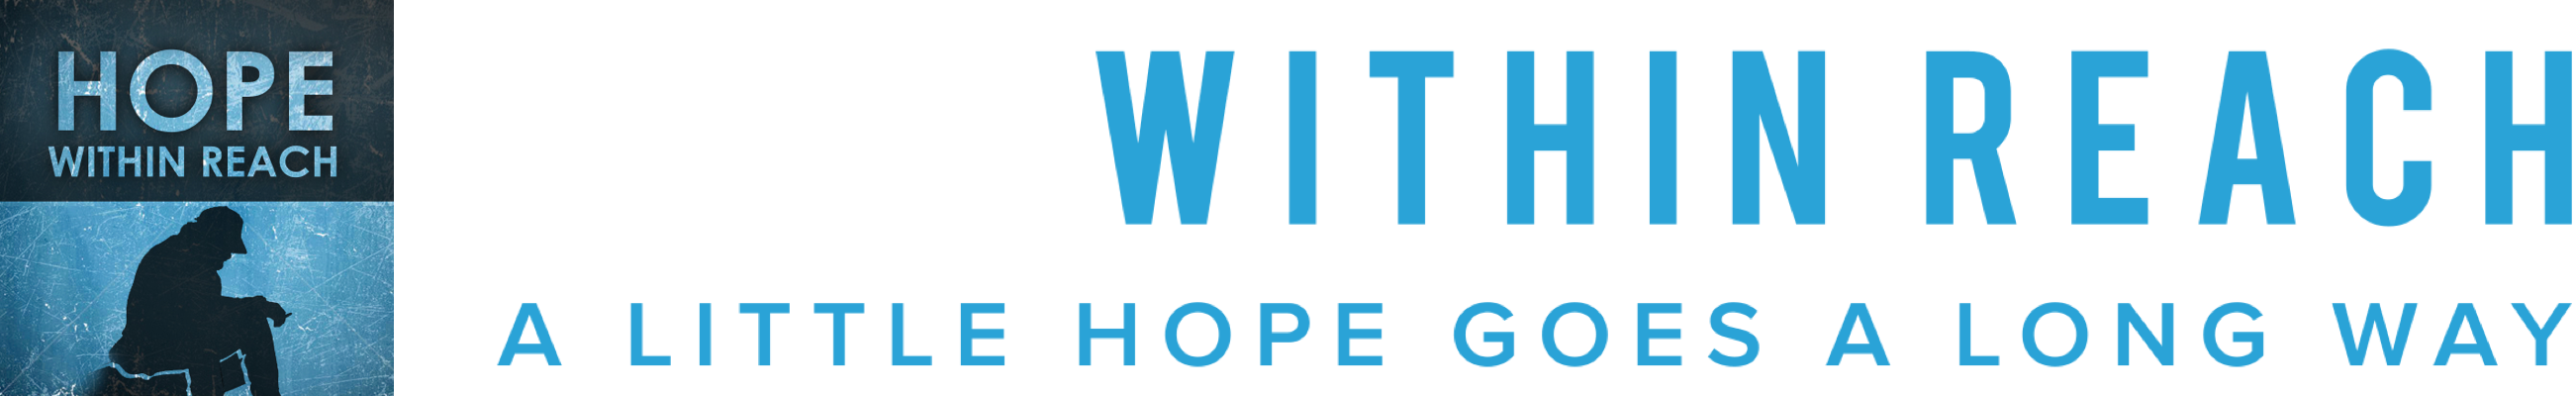 hope-within-reach2-hope-within-reach